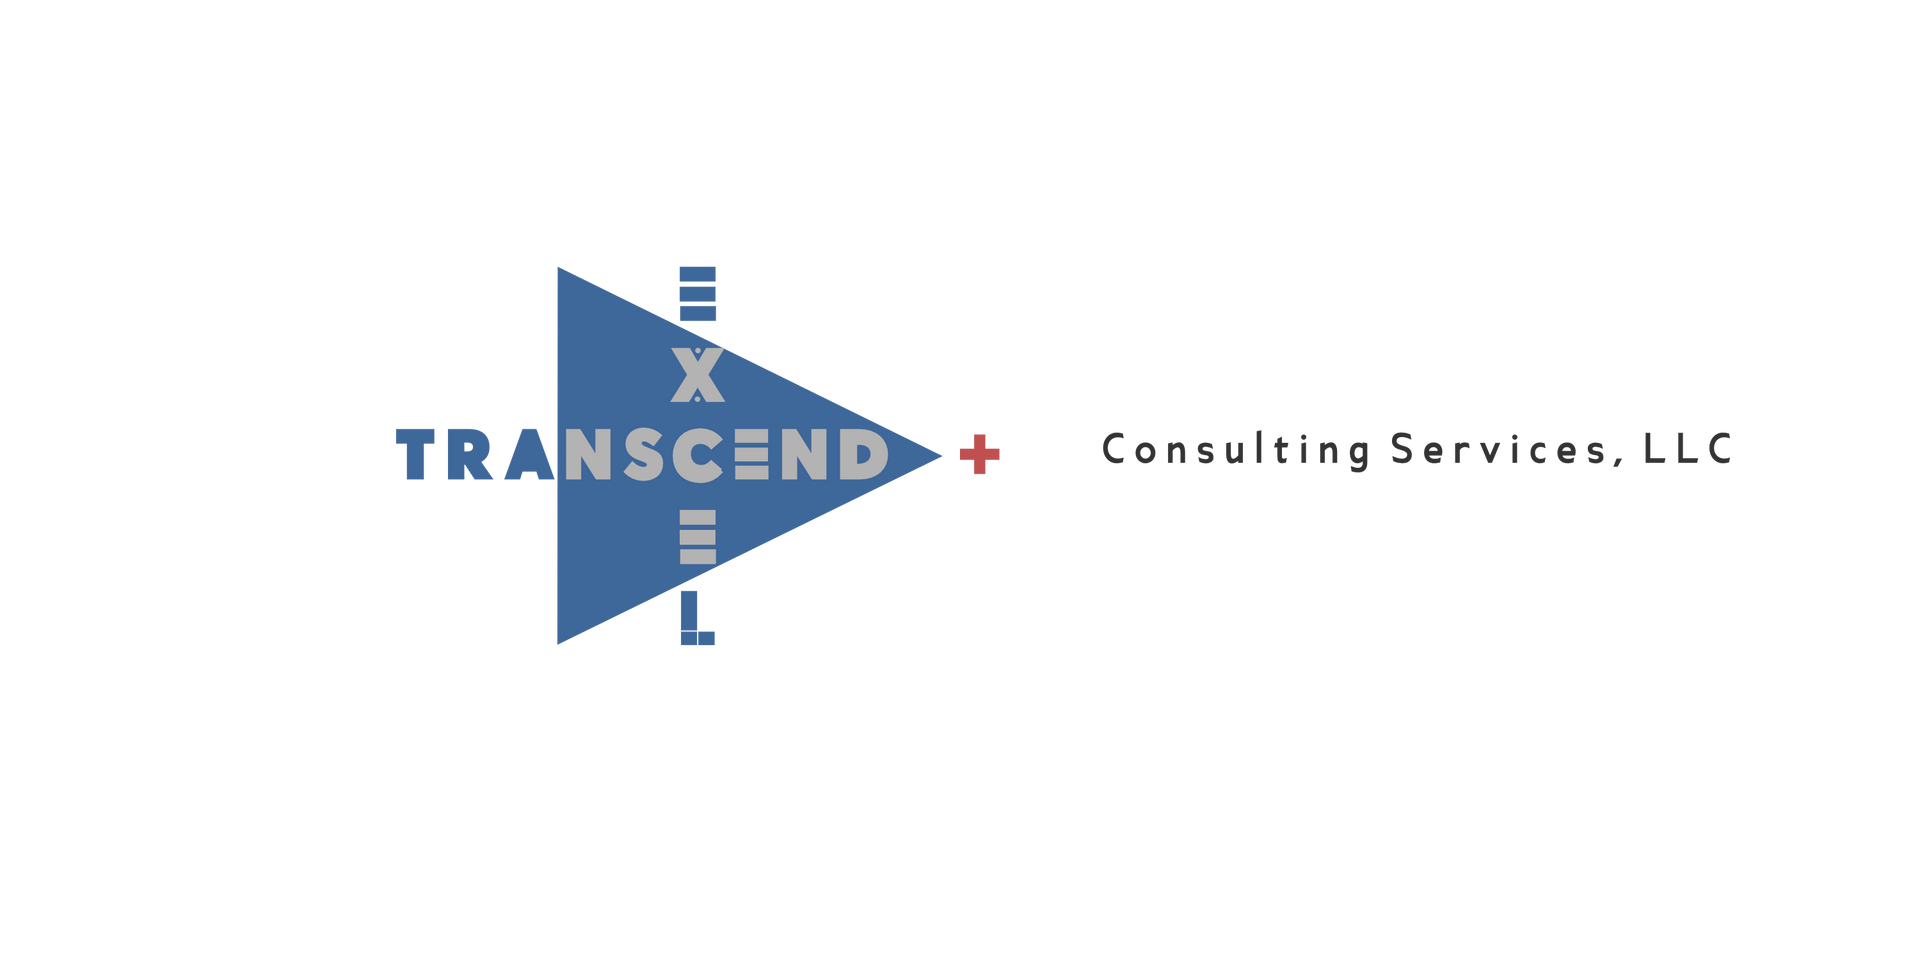 Transcend Consulting Services